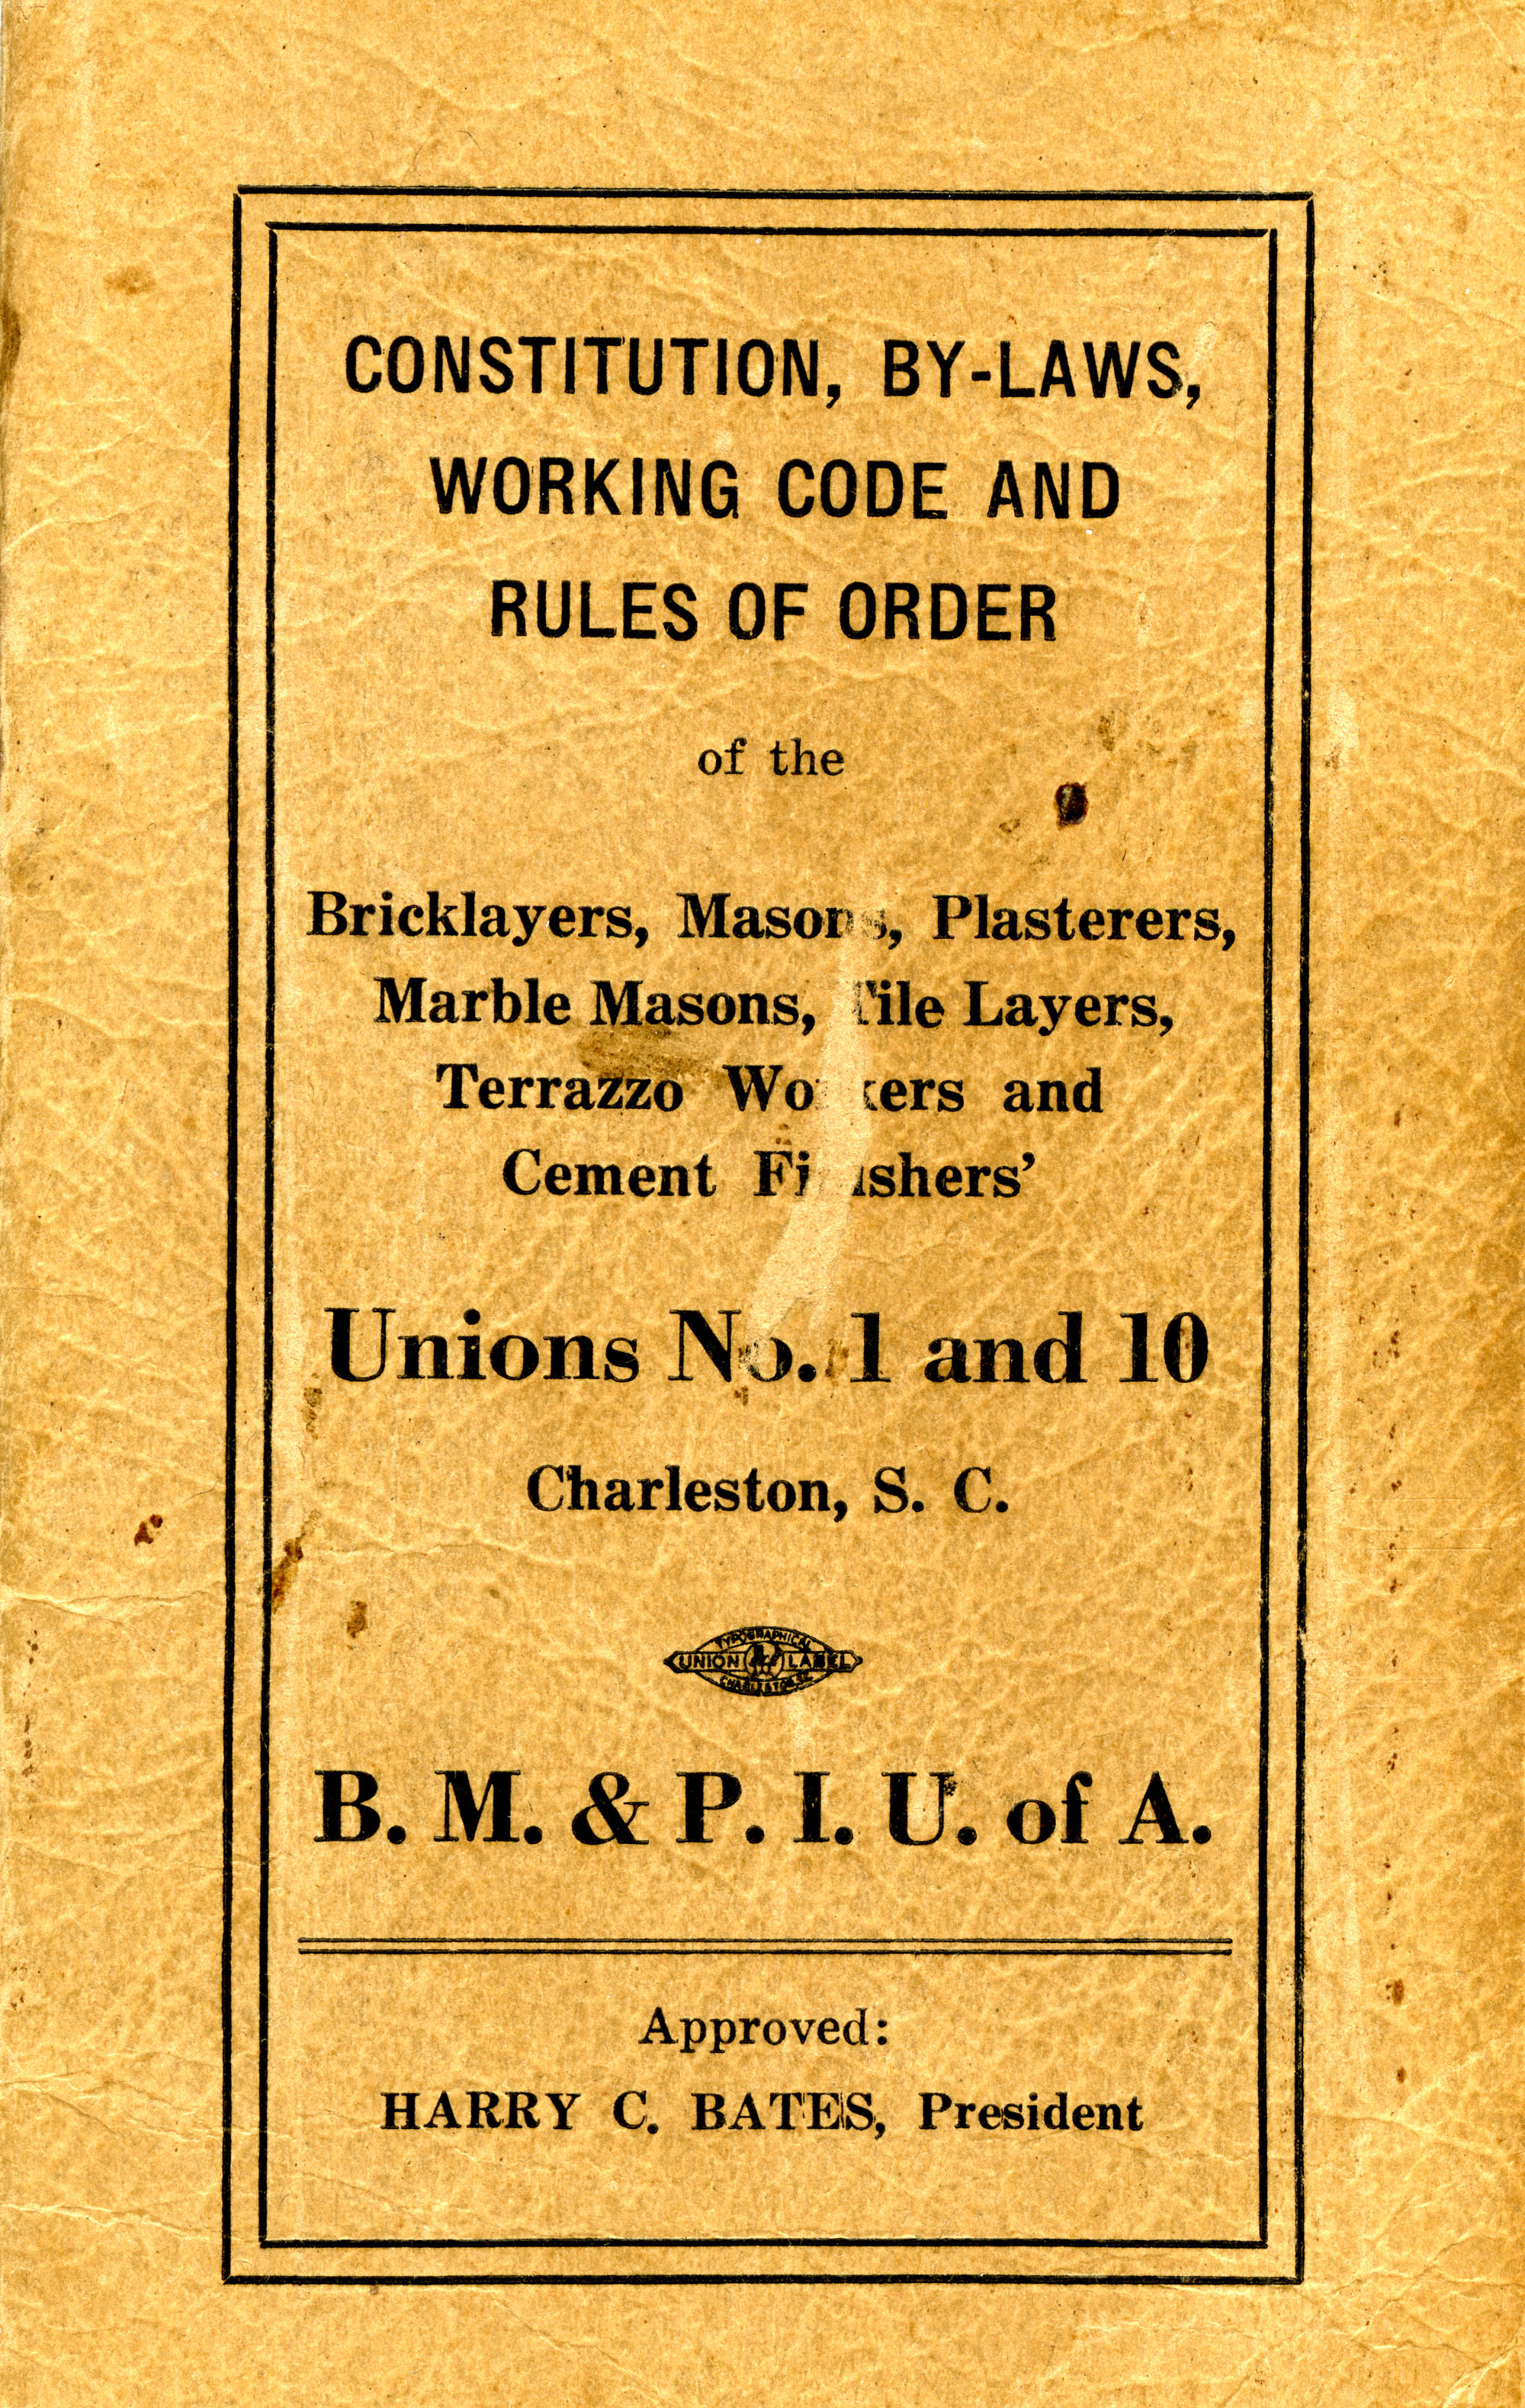 Constitution, by-laws, working code and rules of order, Cover